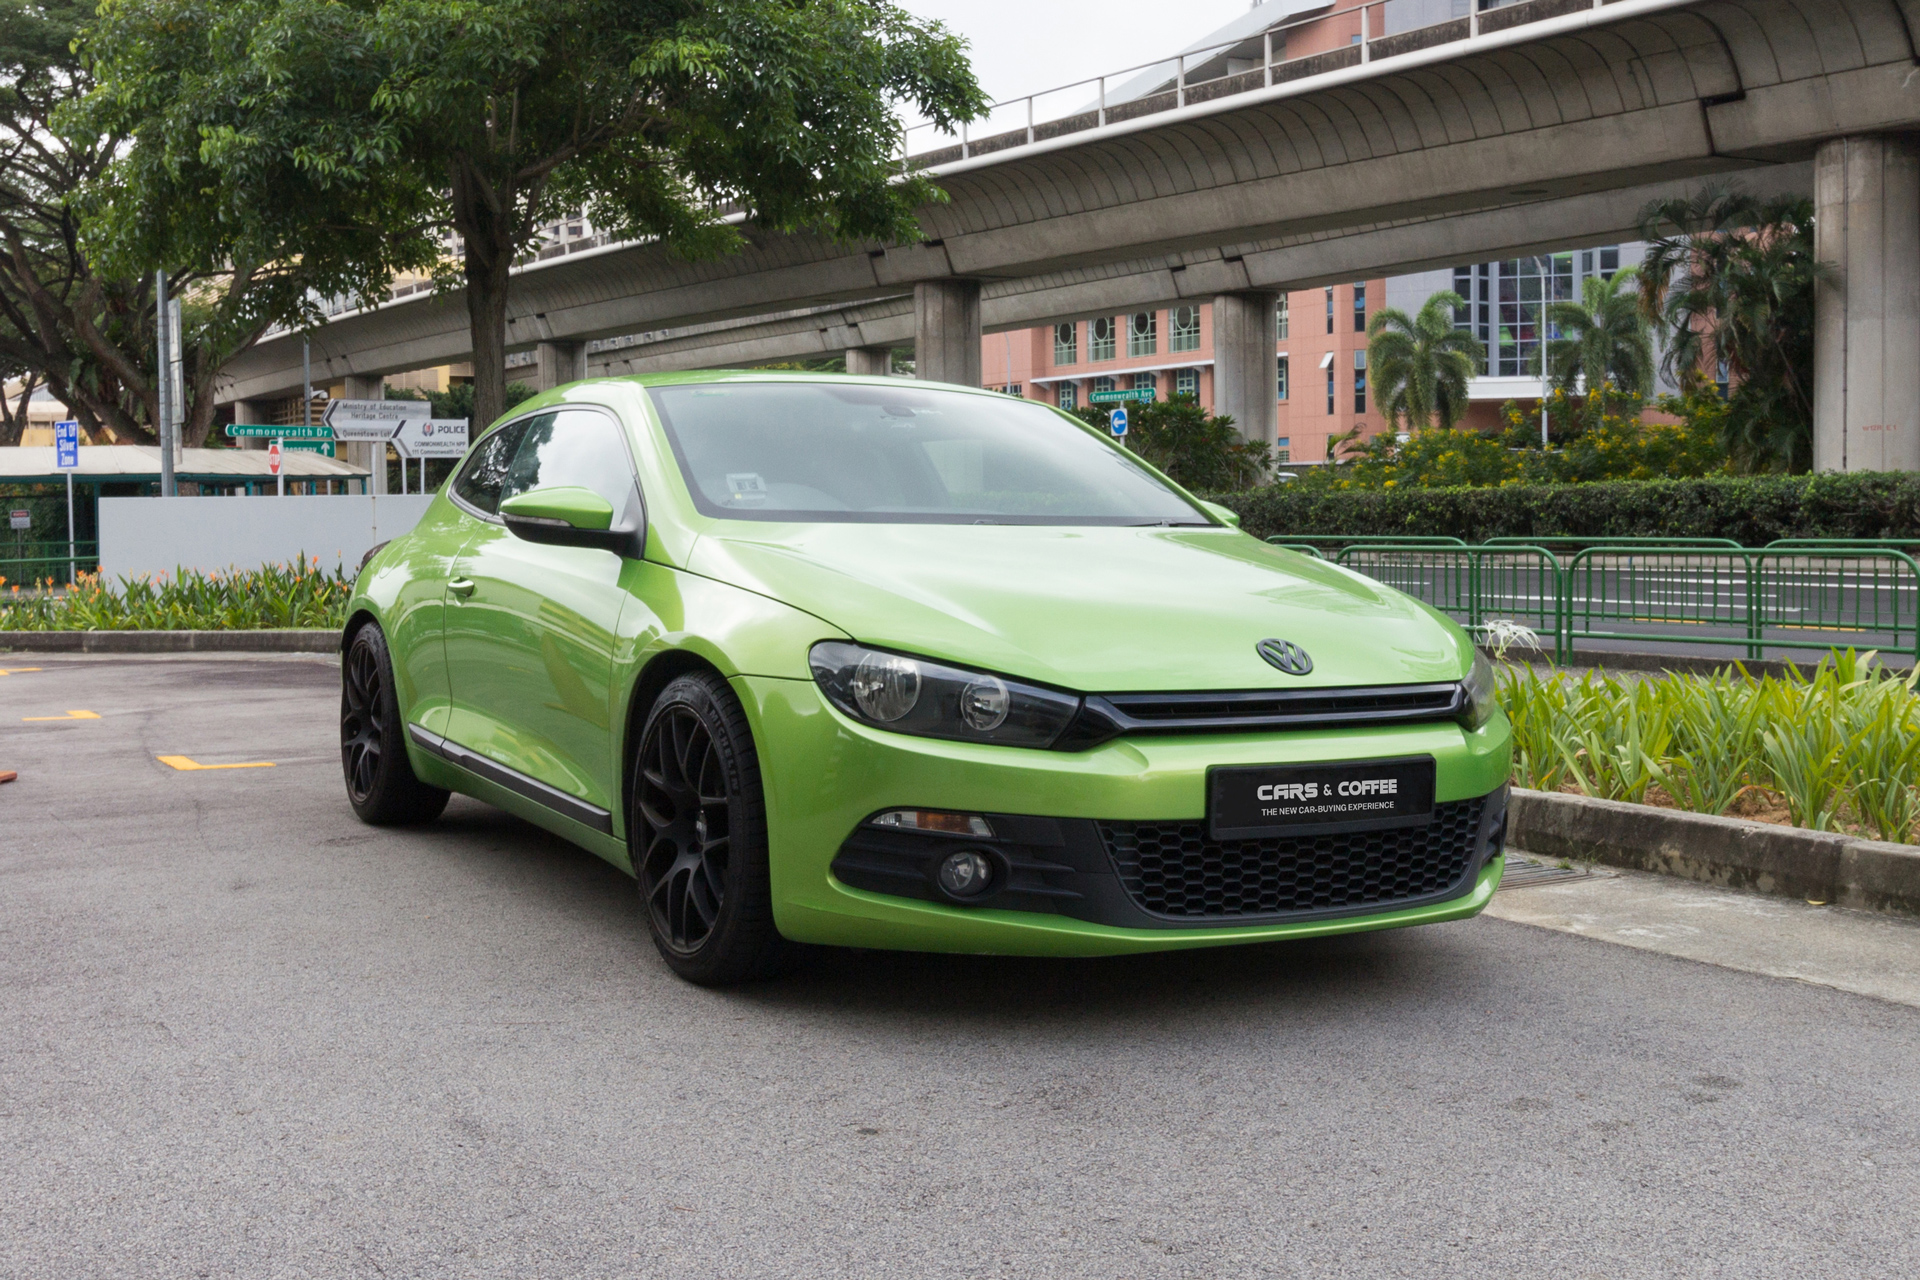 Certified Pre-Owned Volkswagen Scirocco 1.4A TSI | Cars and Coffee Singapore